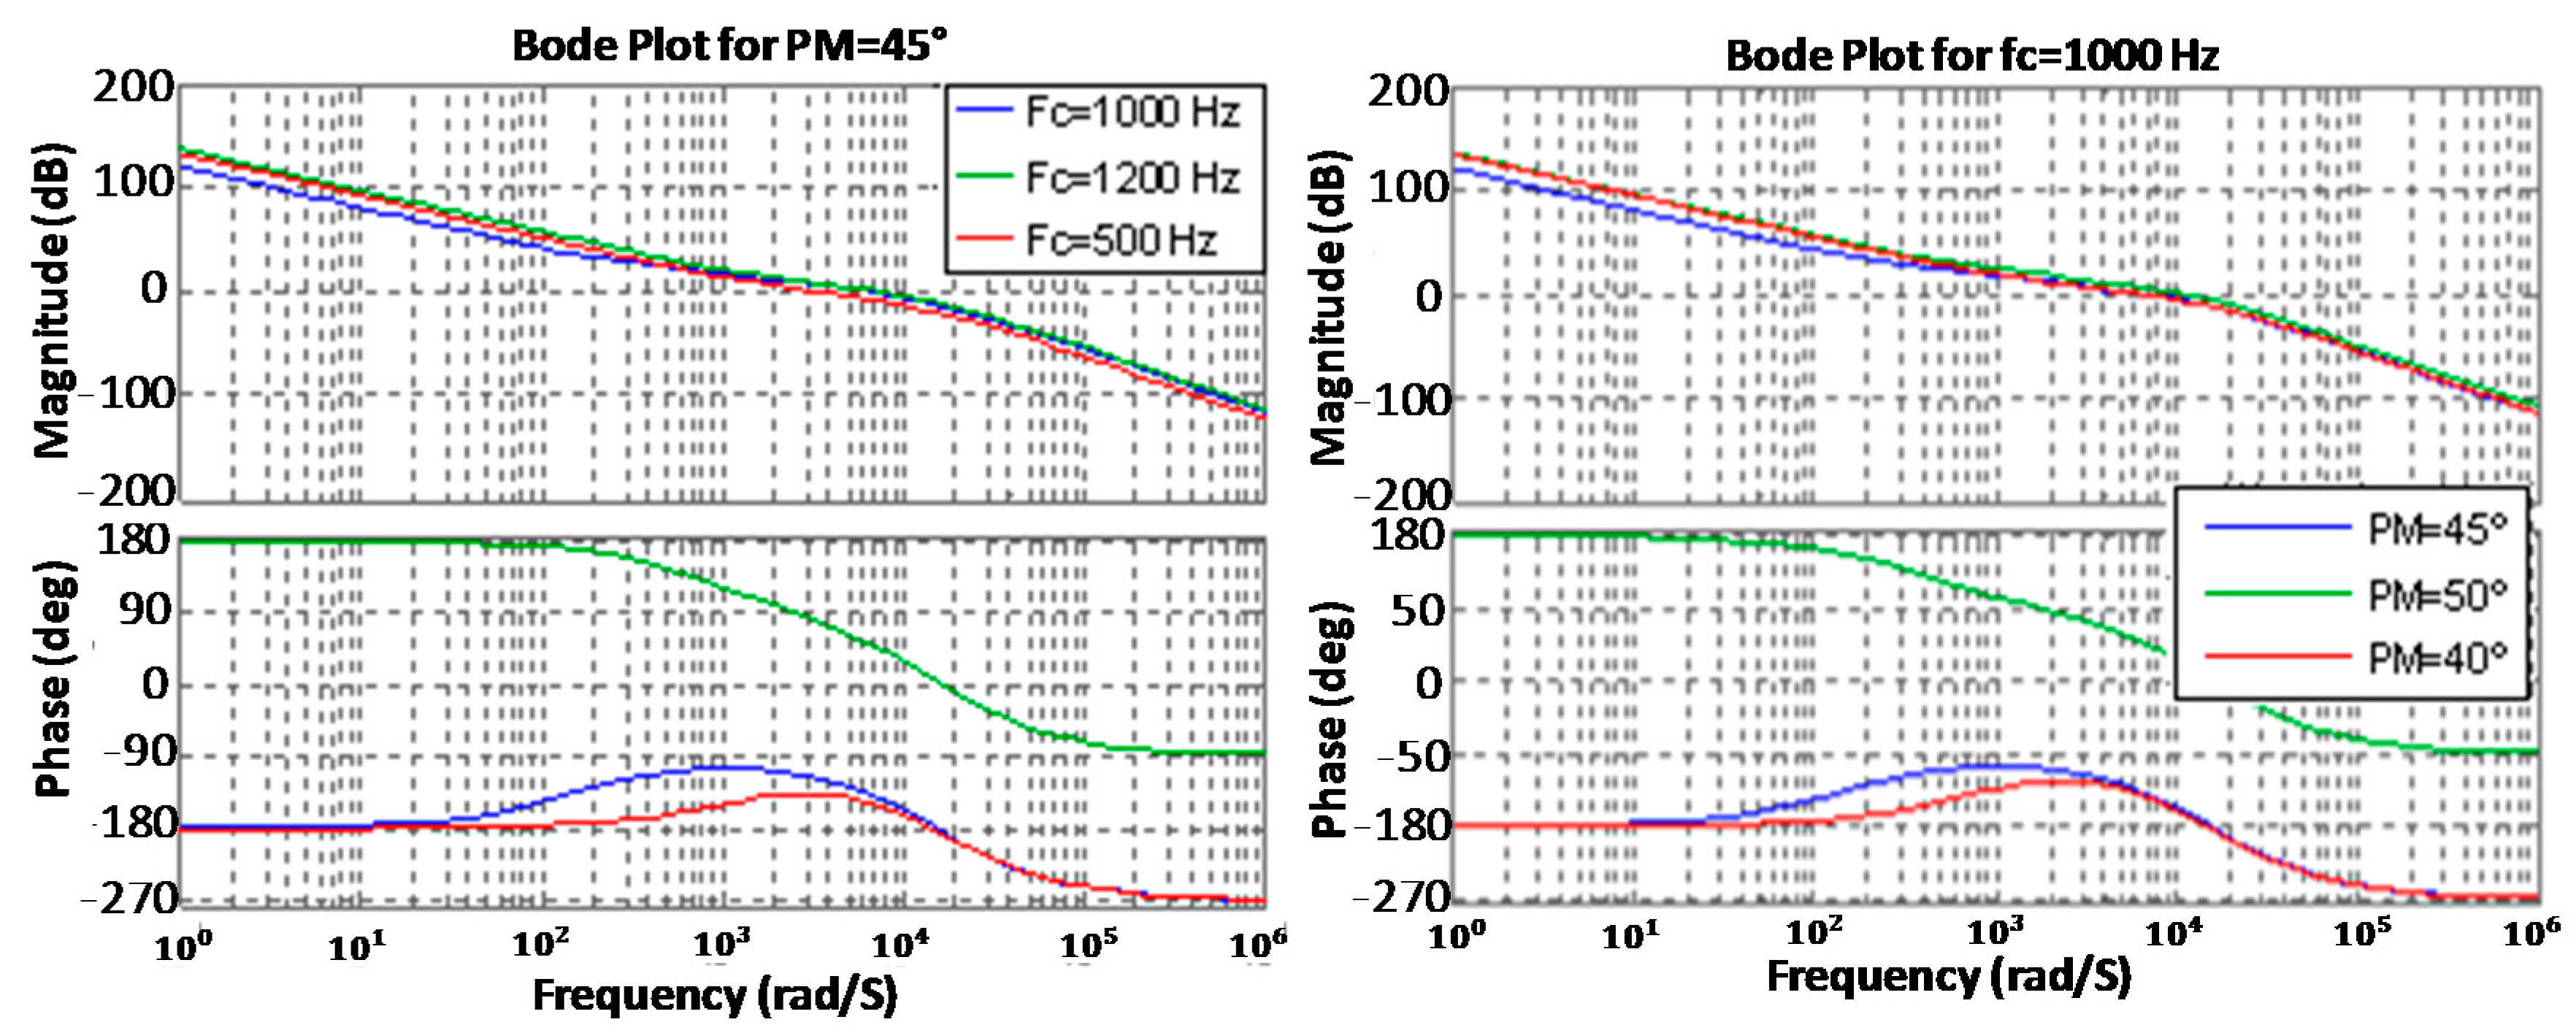 Energies Free Full Text Modelling Analysis And Performance Dc Converters For Electric Vehicles Intechopen 11 01082 G011